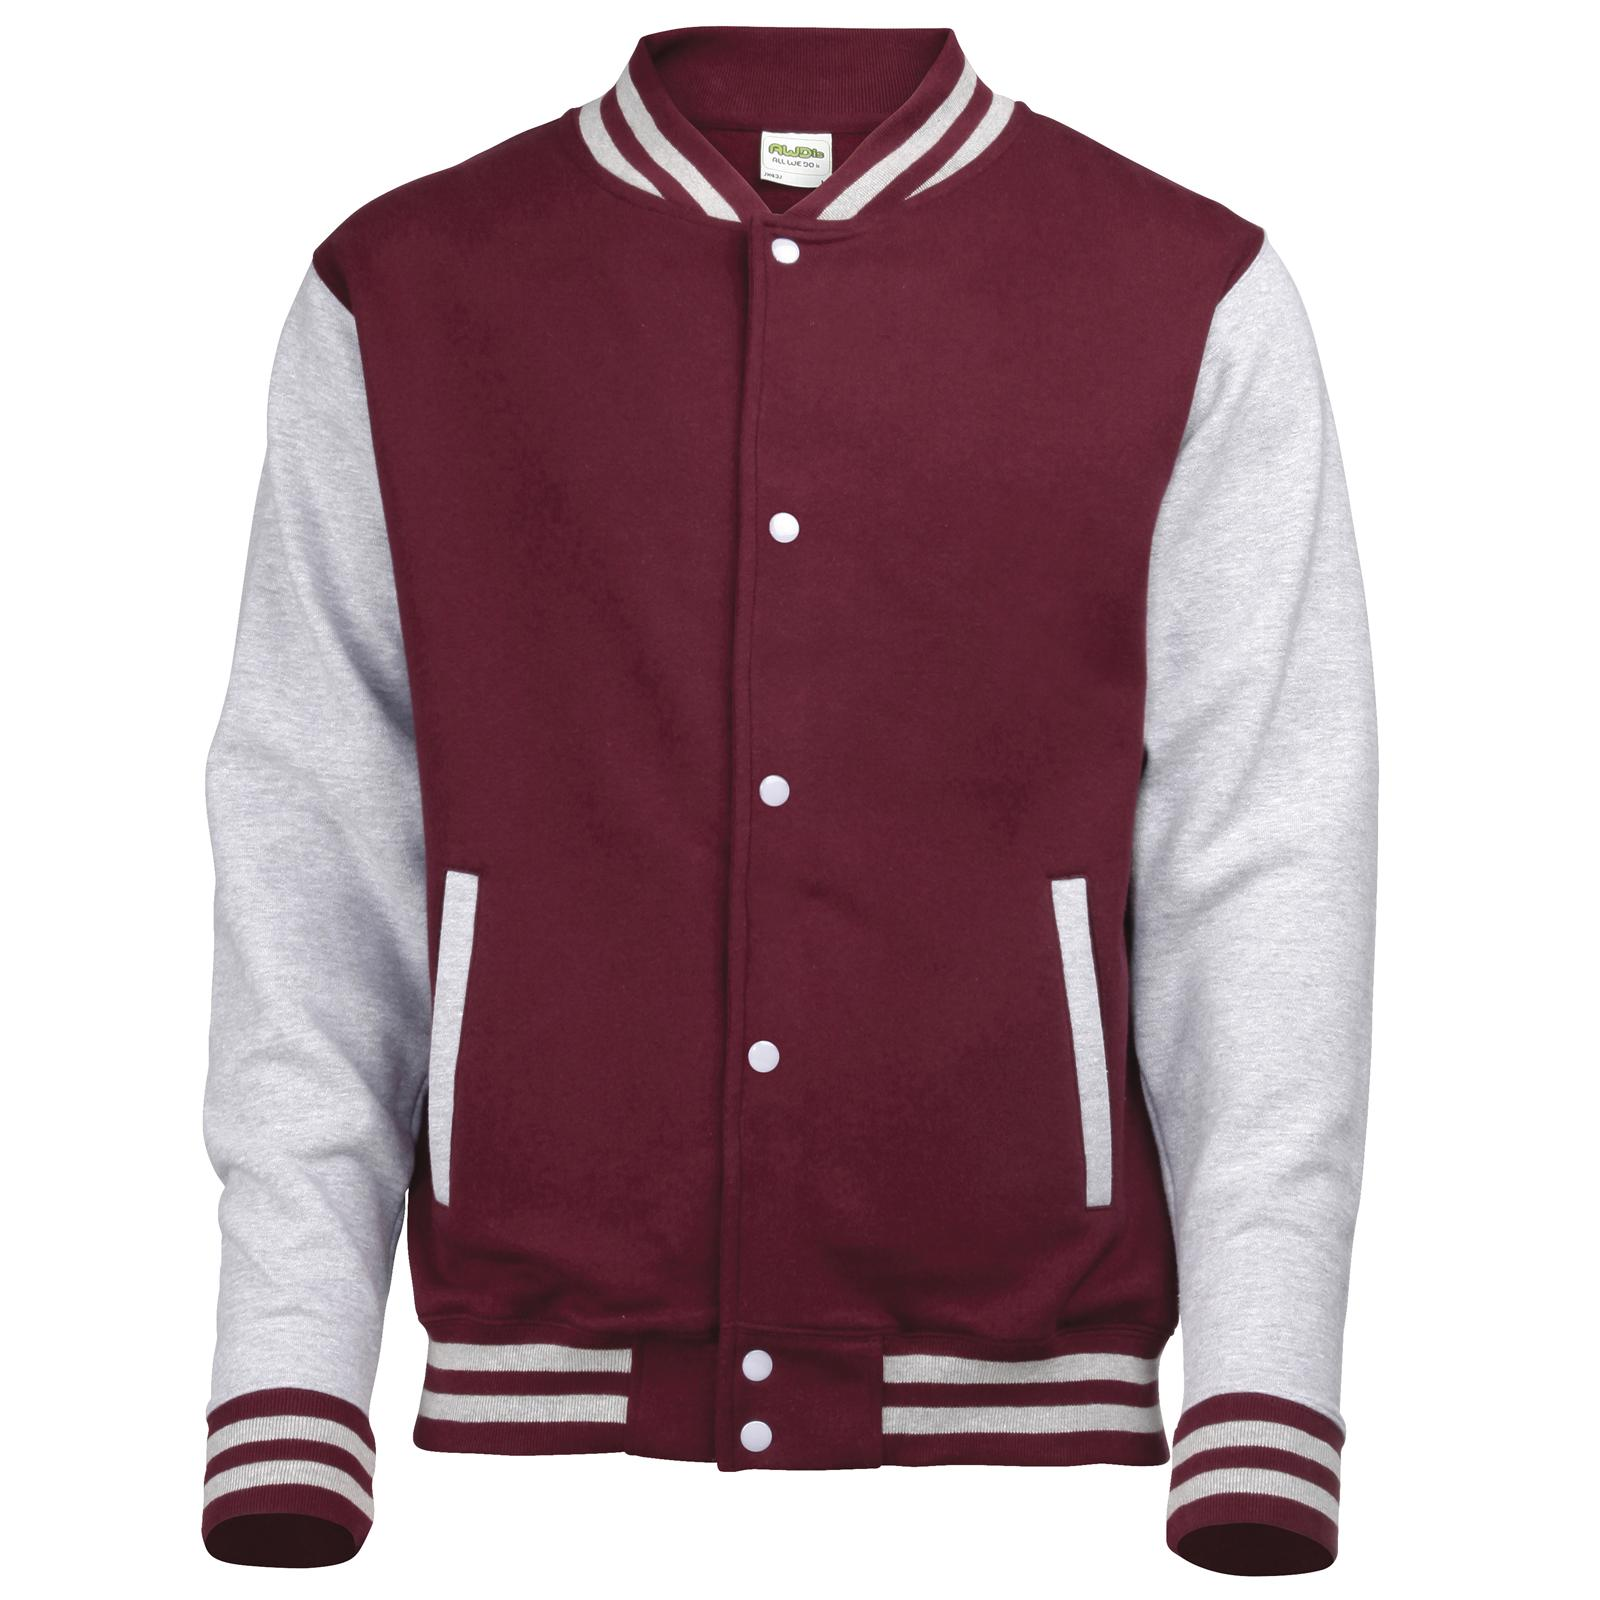 New AWDis Childrens Kids Varsity College Baseball Jacket in 10 ...